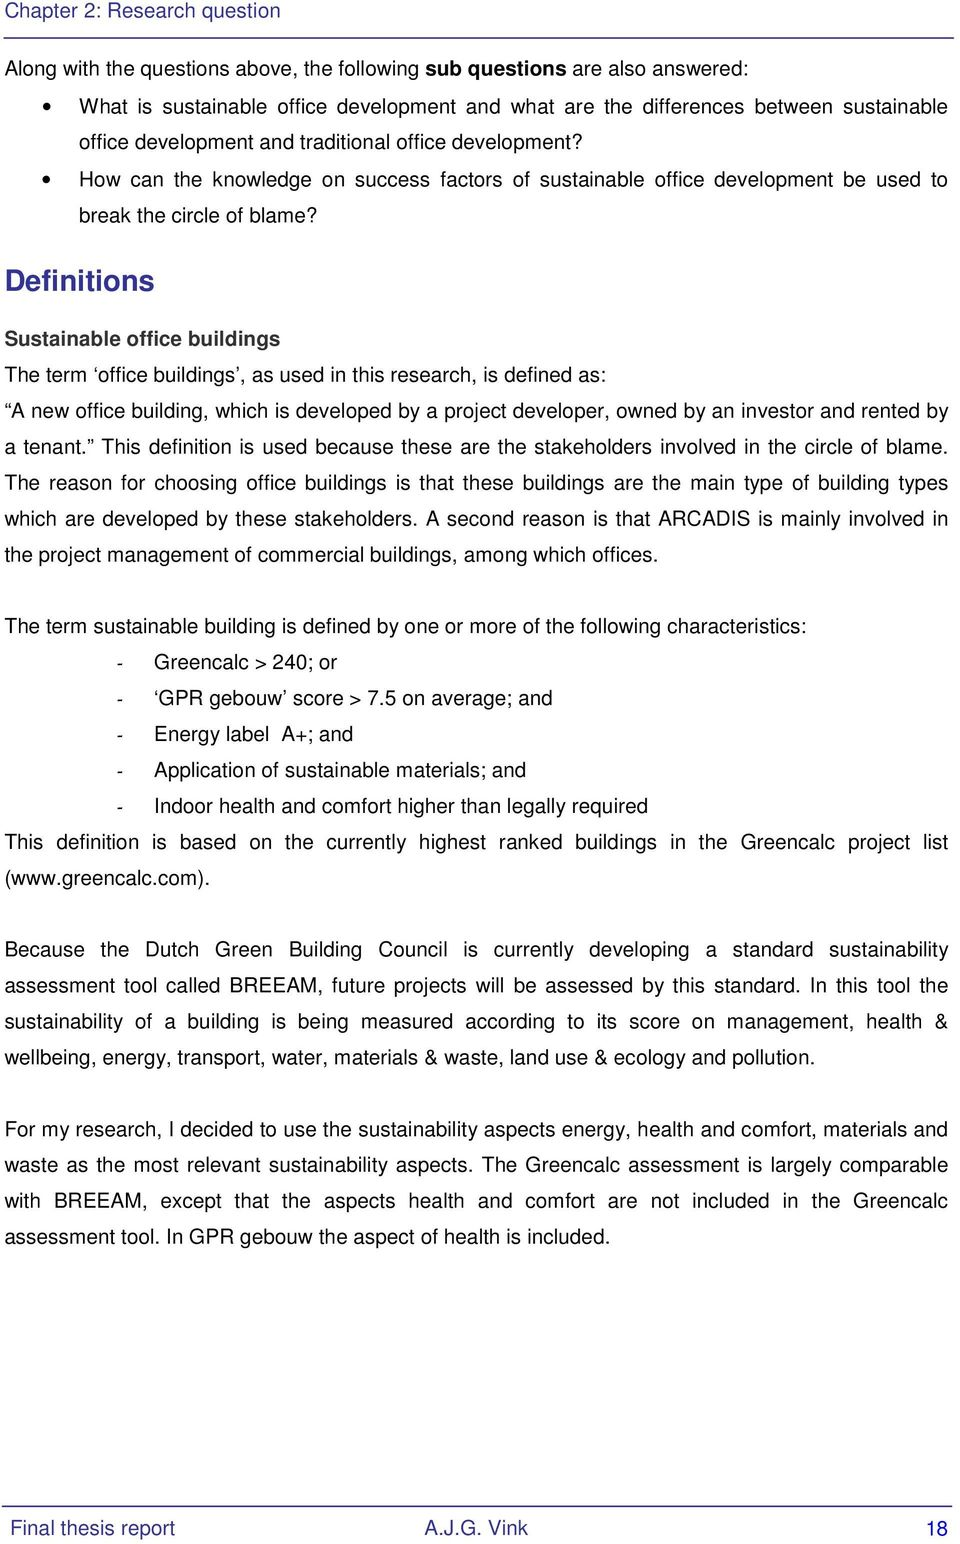 Definitions Sustainable office buildings The term office buildings, as used in this research, is defined as: A new office building, which is developed by a project developer, owned by an investor and